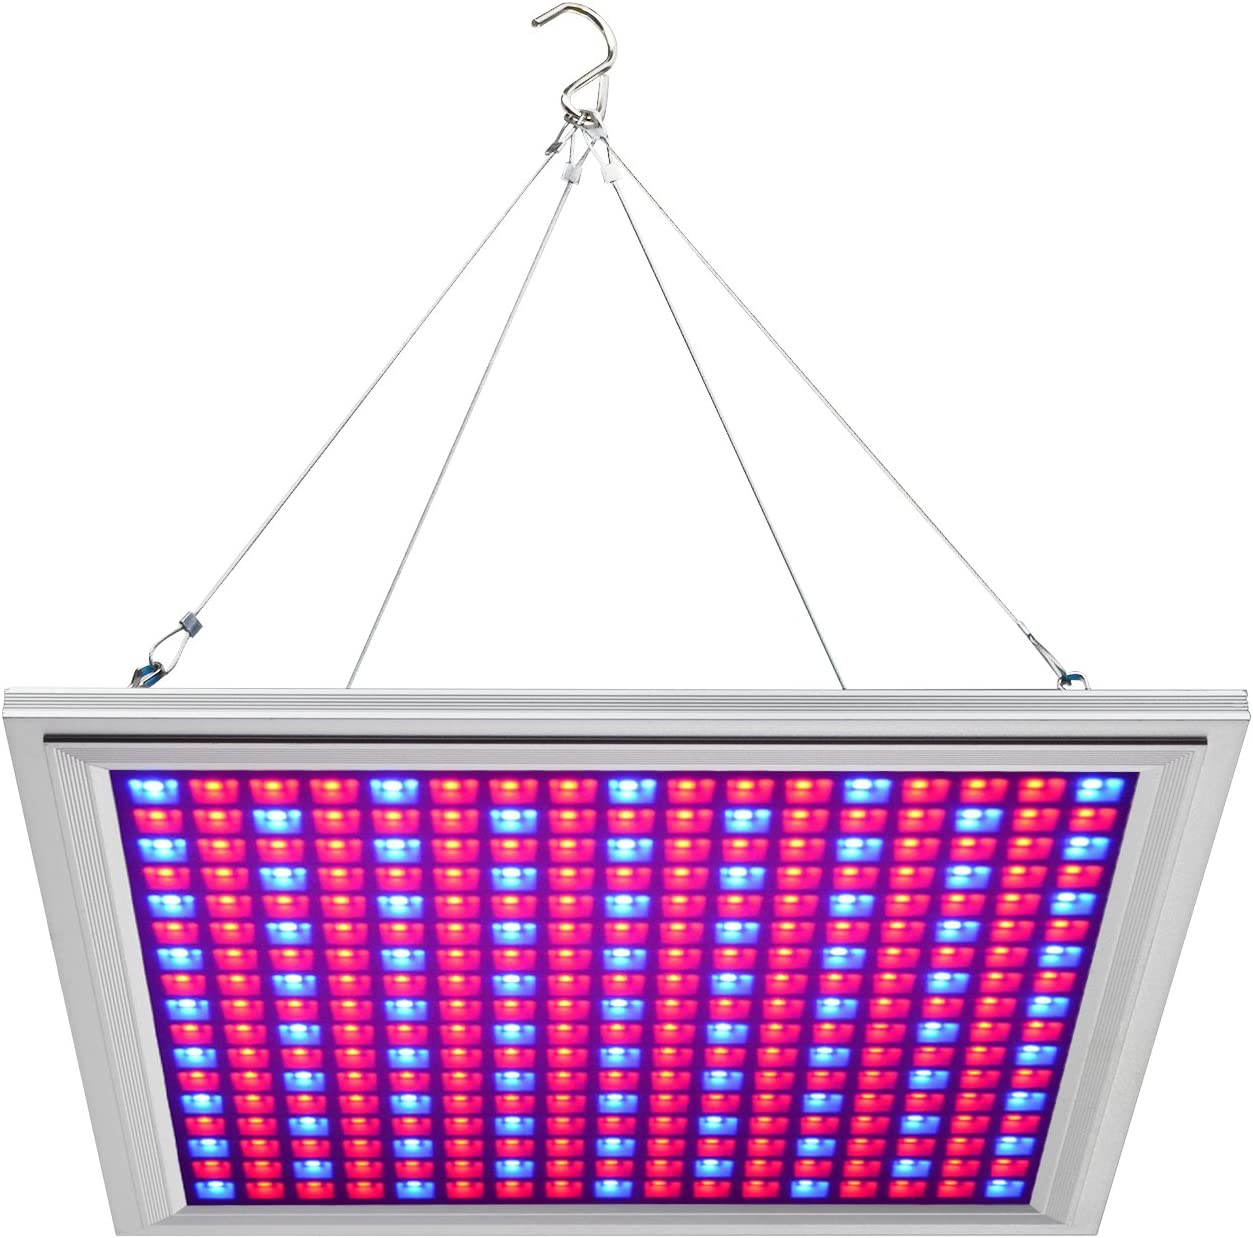 COB LED Grow Light Full Spectrum 3500K,Upgrade 150W Equivalent Growing Plant Lights, High Efficiency Energy Saving Plant Lamp for Indoor Plants Veg and Flower, Cooling Fan Without Noise